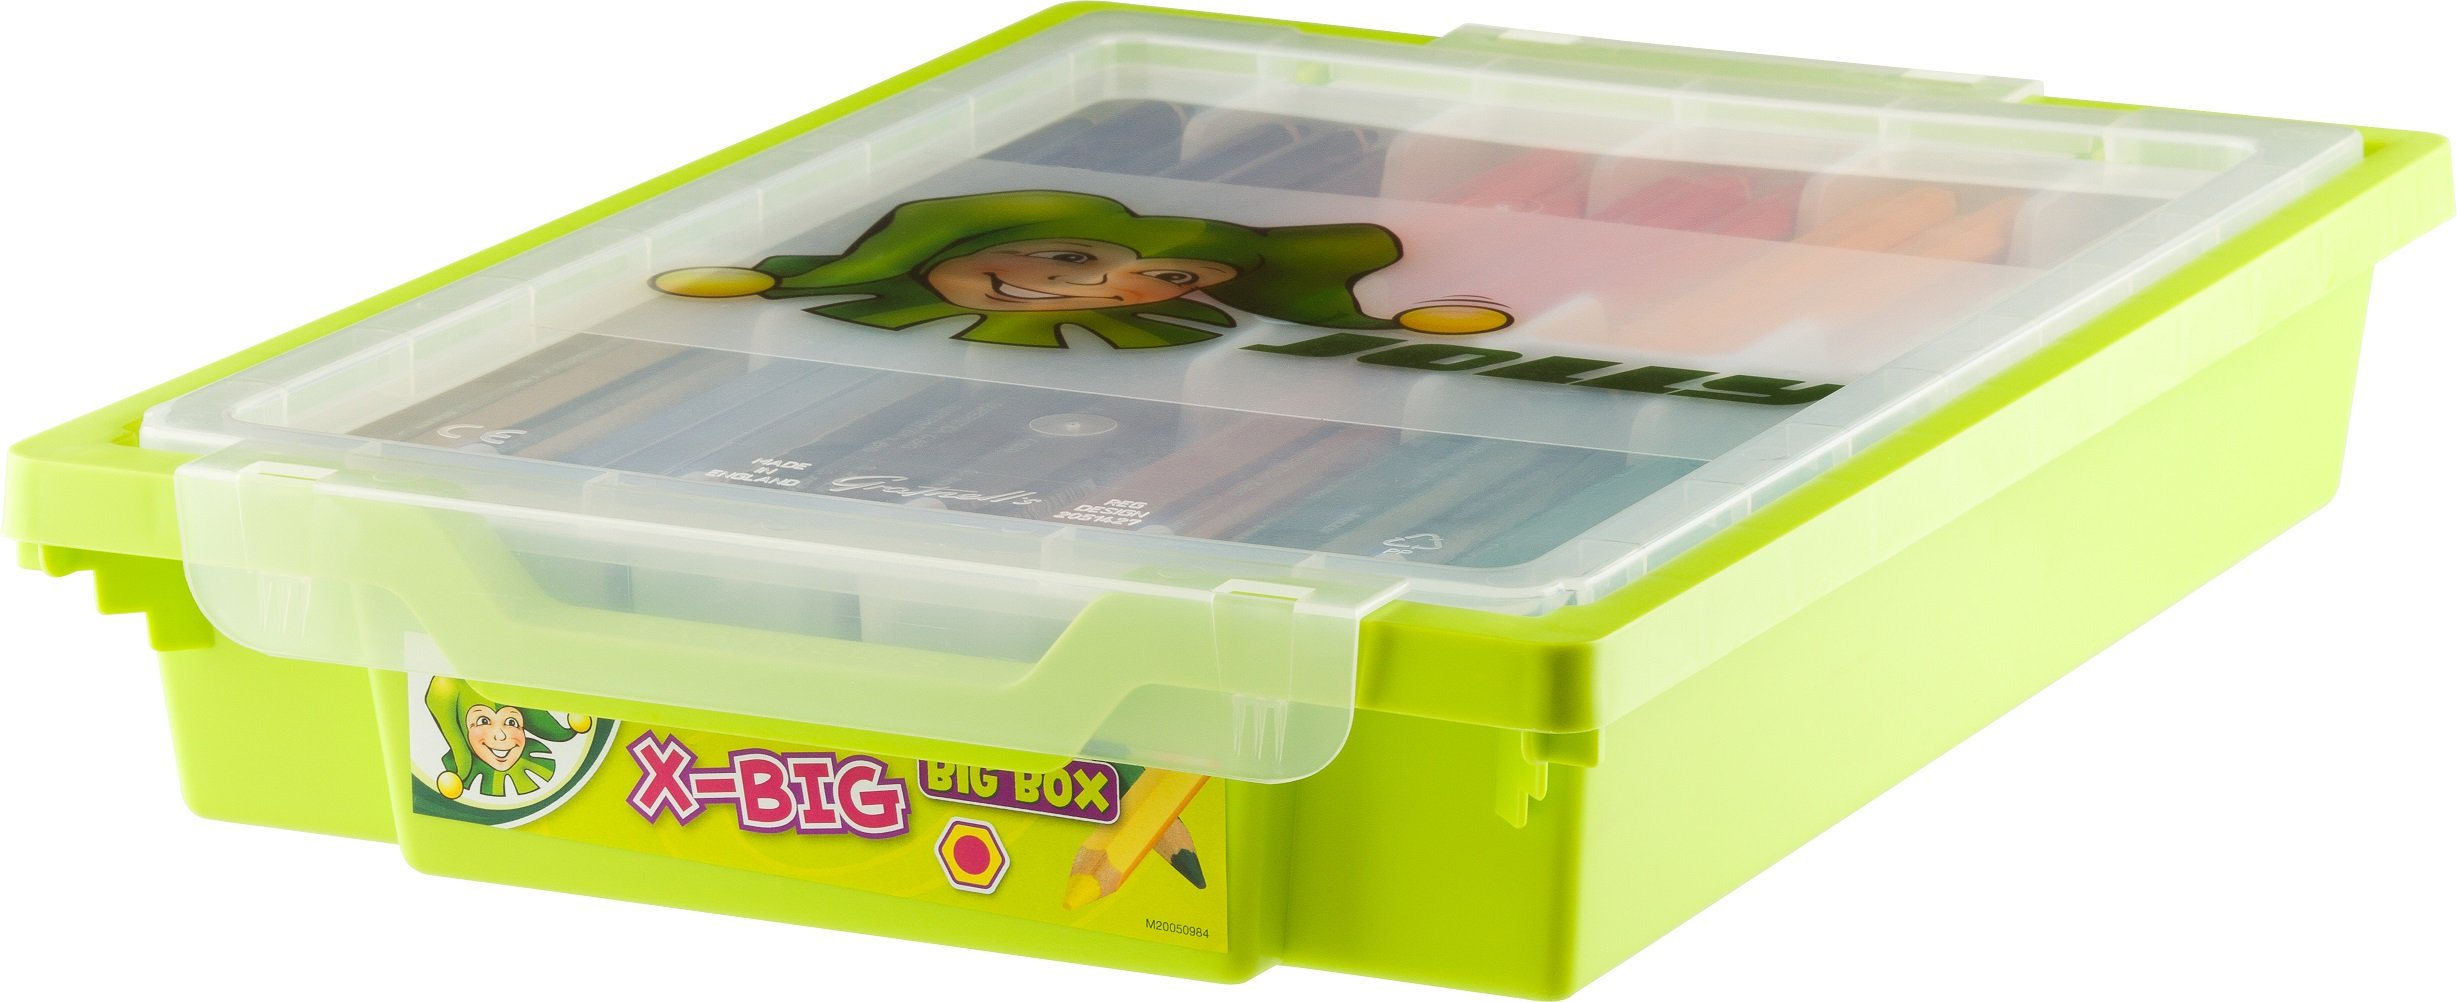 Jolly X-Big Premium Jumbo Colored Pencils with Stackable Storage Box; 180 Pcs (15 each of 12 secondary colors), Perfect for Group Projects and Classrooms, Special Needs, Art Therapy, Pre-School by Jolly (Image #2)